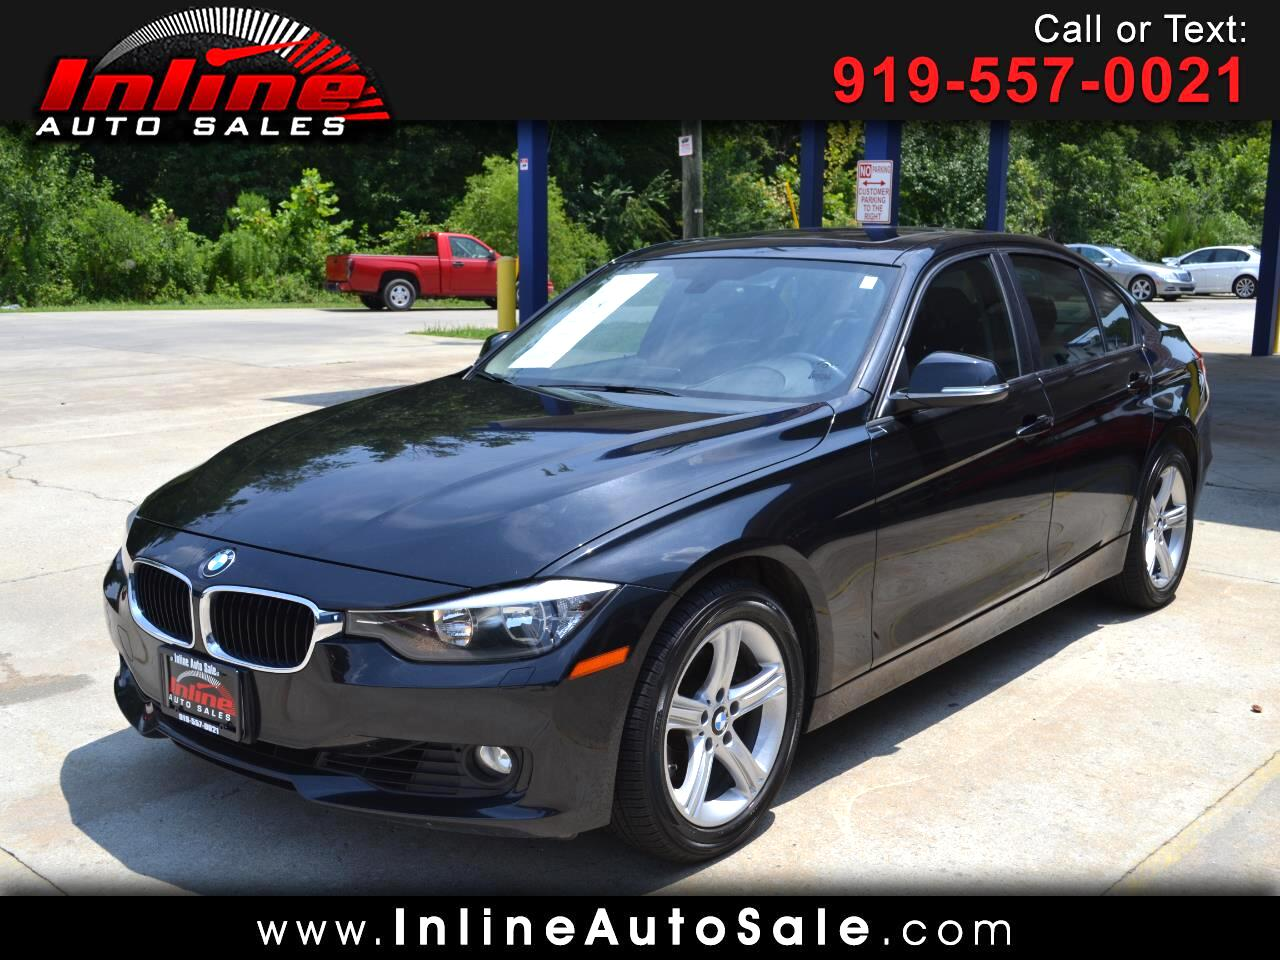 2012 BMW 3 Series 4dr Sdn 328i RWD South Africa